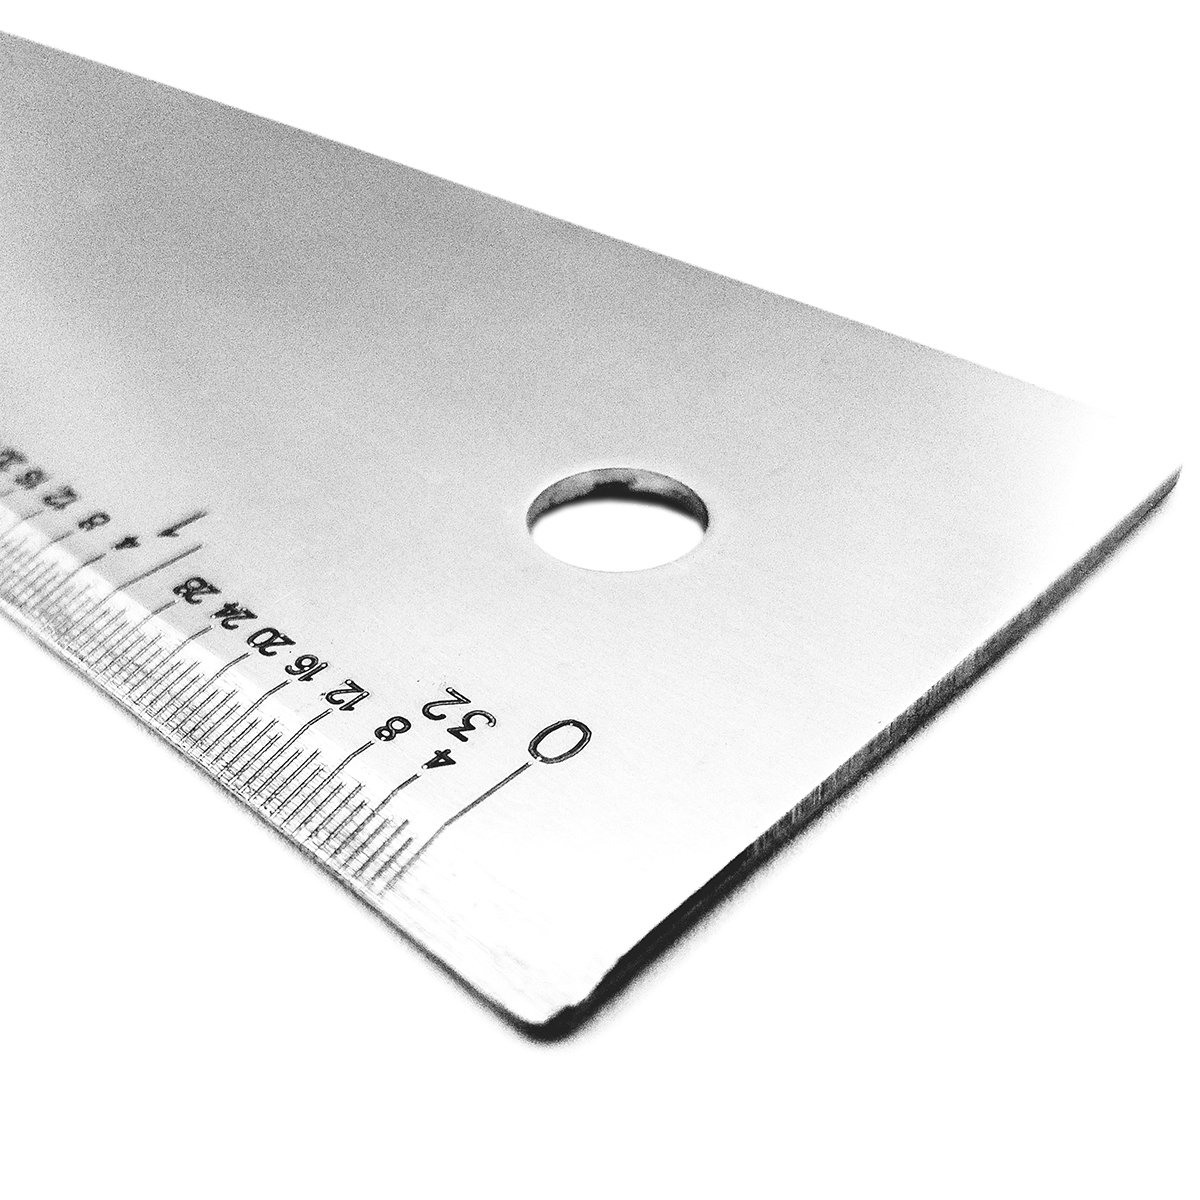 48'' Graduated Stainless Steel Straight Edge: 1/32nd INCH